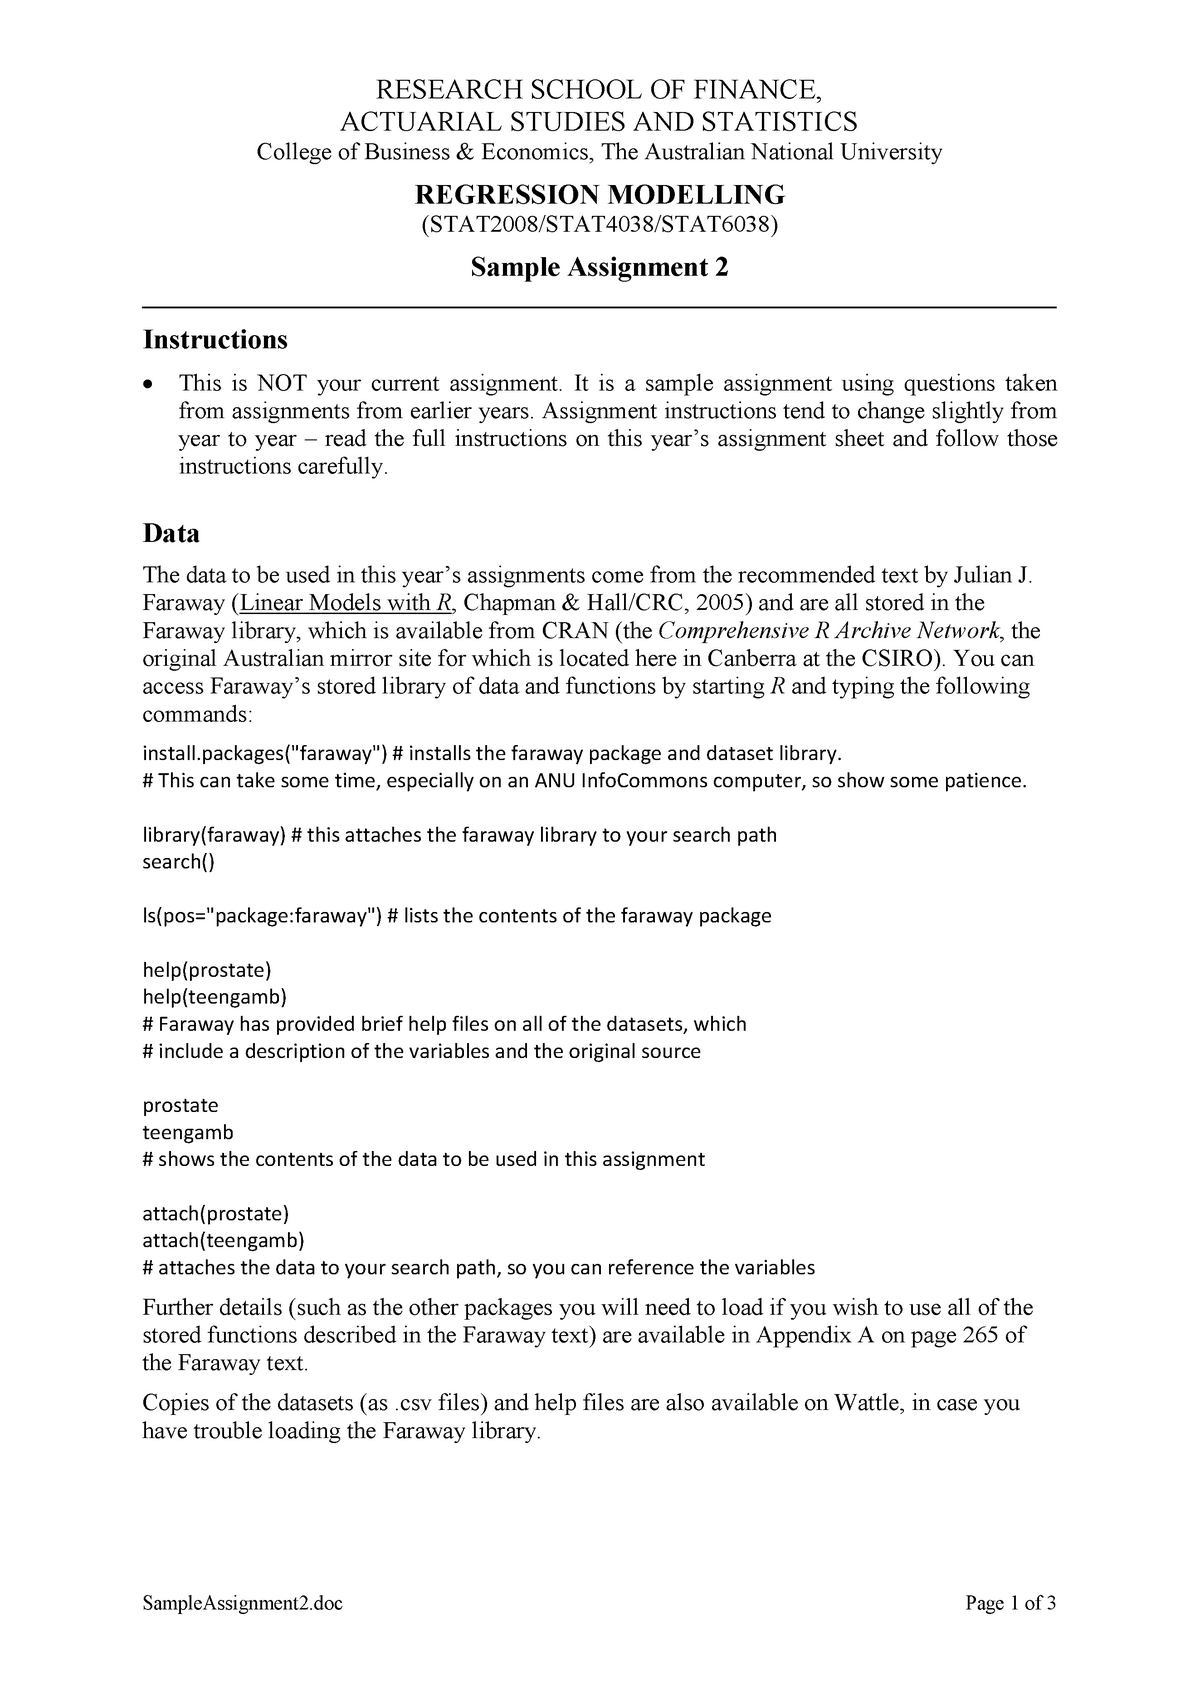 Sample Assignment 2 - STAT2008 Regression Modelling - ANU